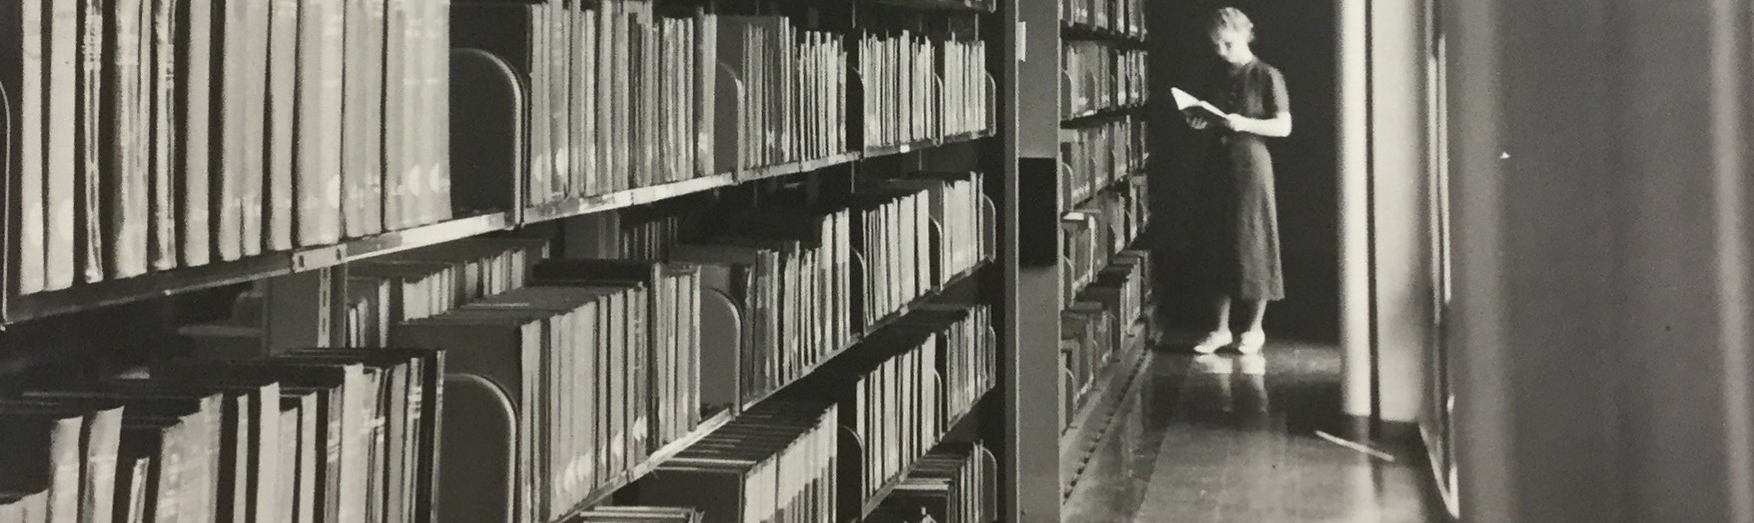 Lady looking through a book, with bookshelves in the foreground. Circa 1950.